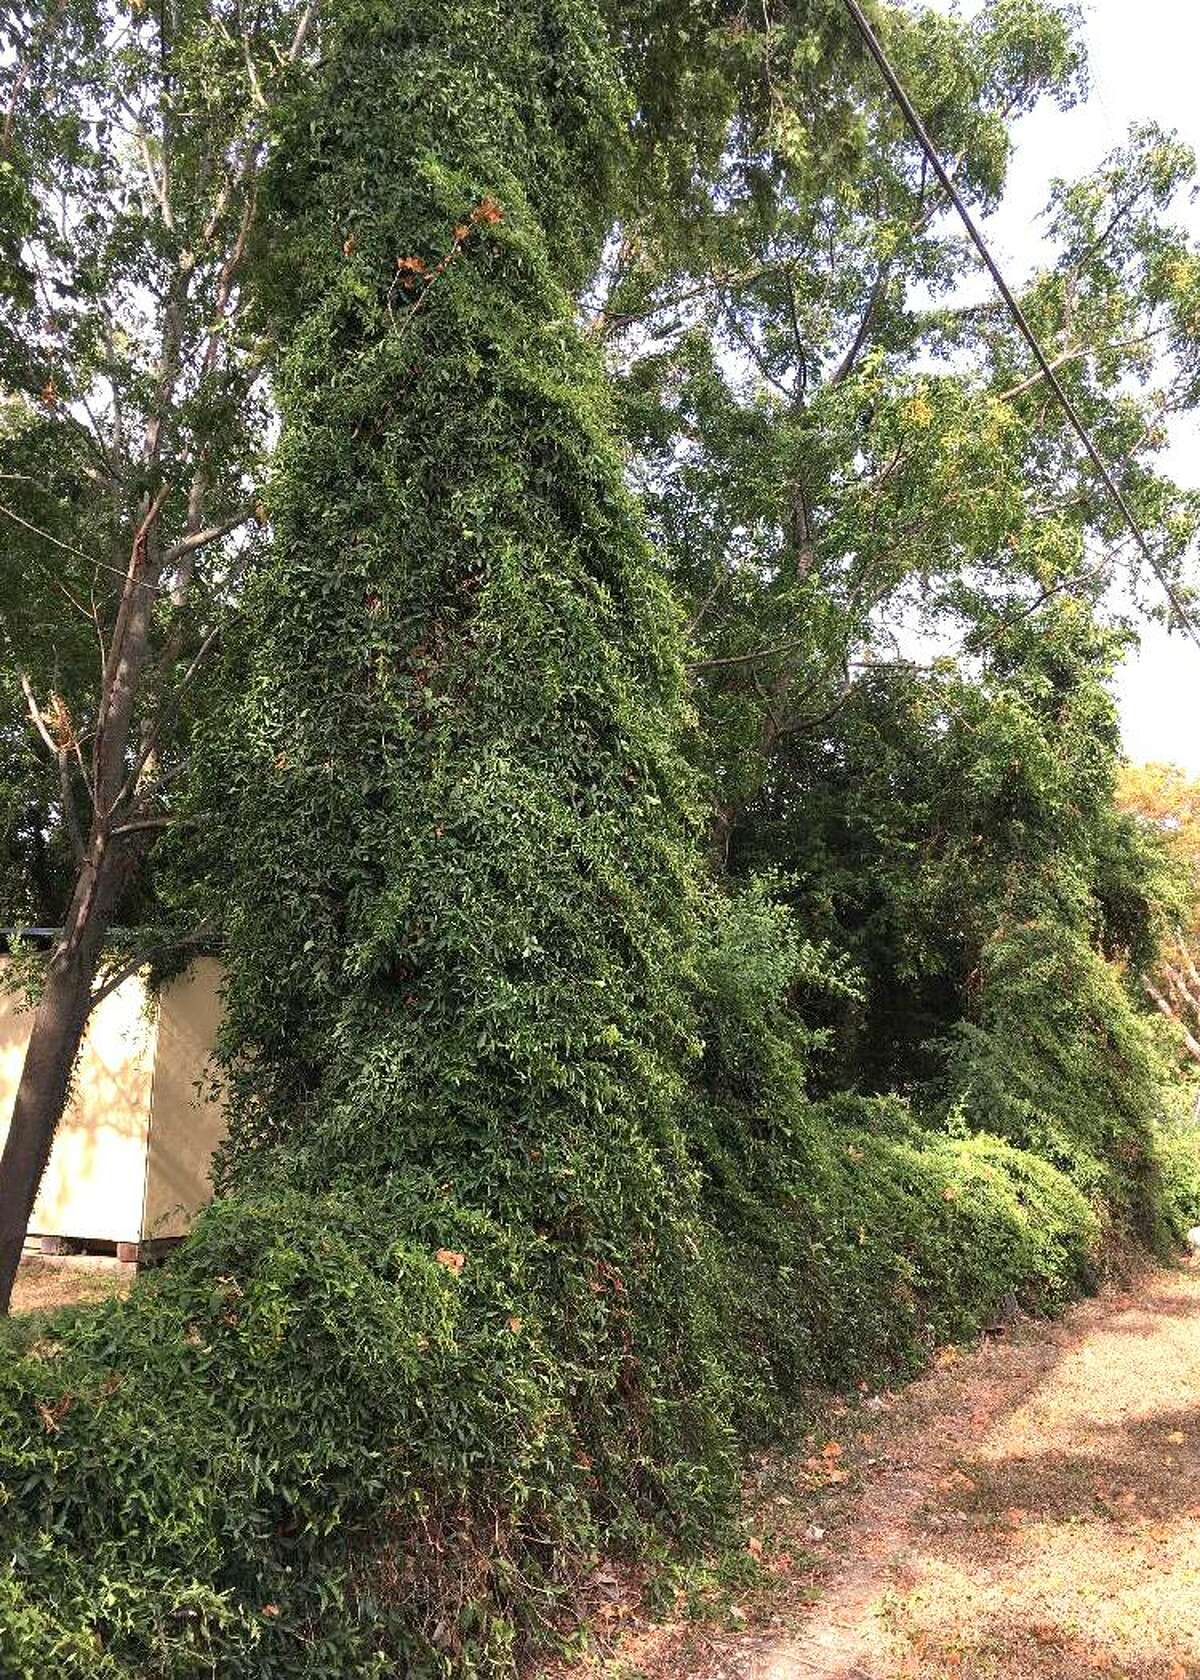 To deal with these overgrown vines, Neil Sperry suggests using a power brush cutter of some sort to trim the vines away one section at a time. Then trim a bit and then use a strong garden rake to pull the vines loose before trimming more.